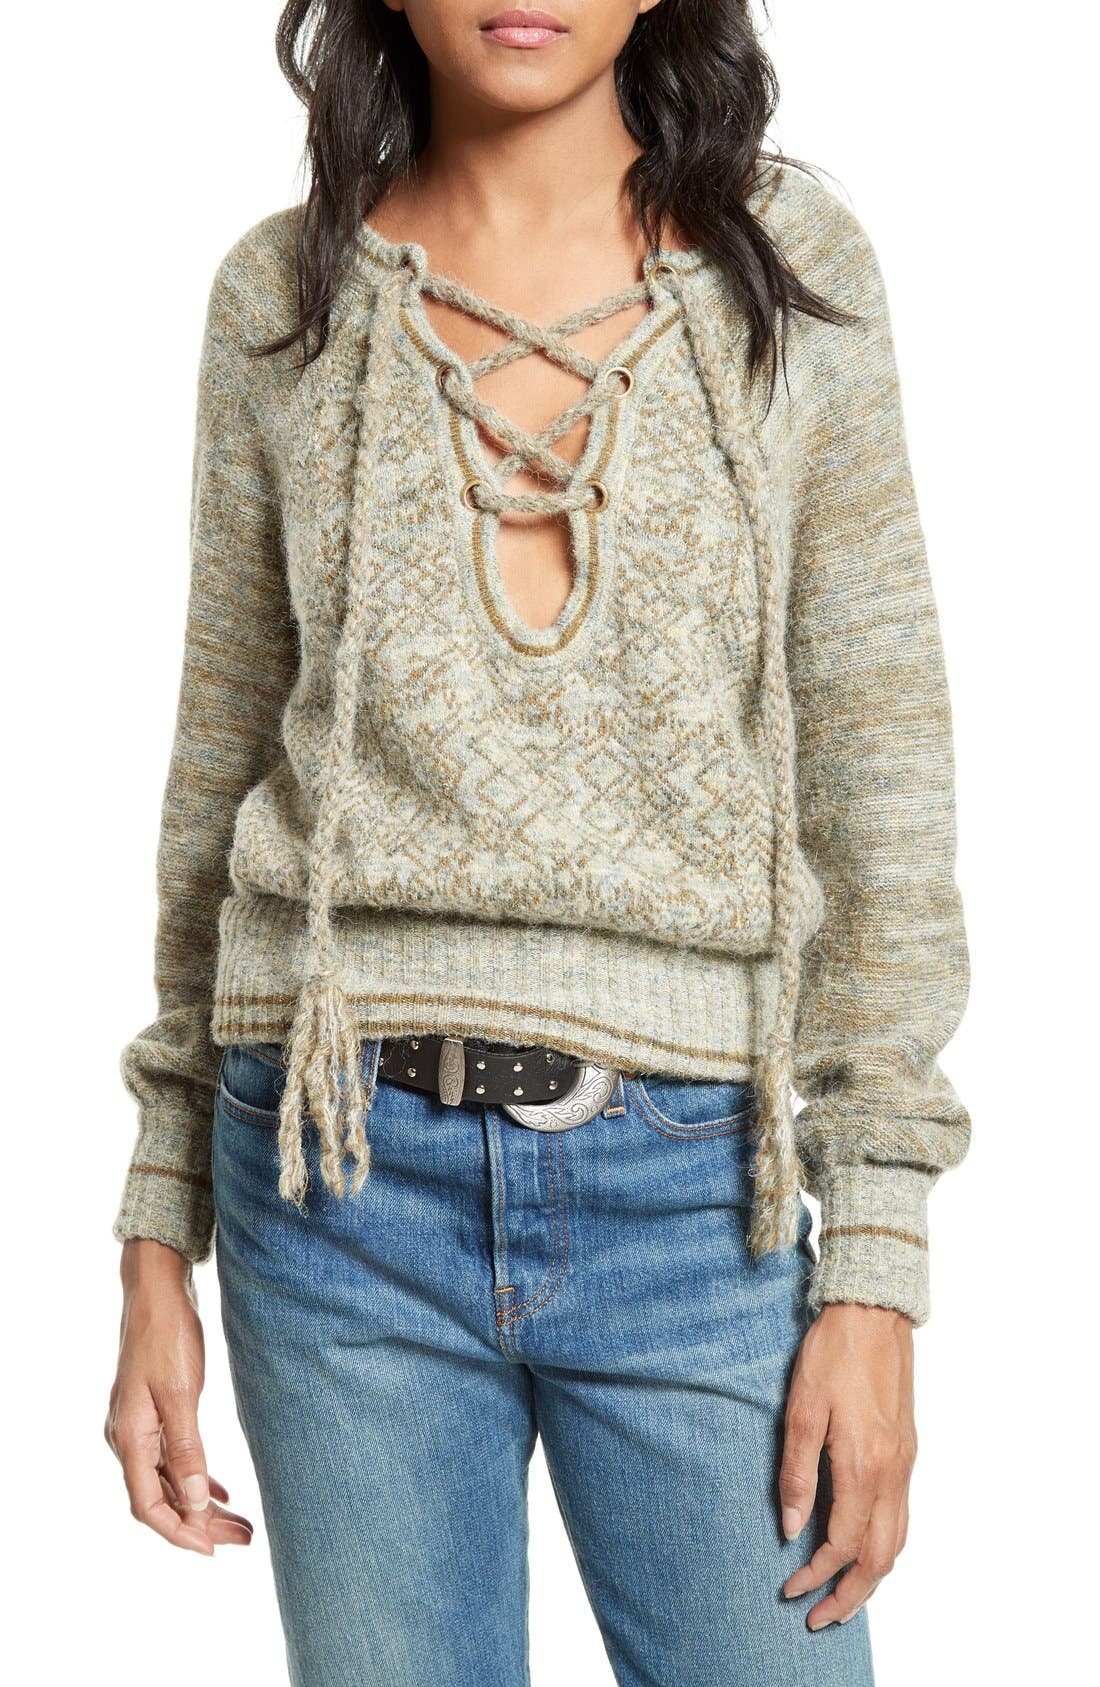 Alternate Image 1 Selected - Free People Lace-Up Sweater